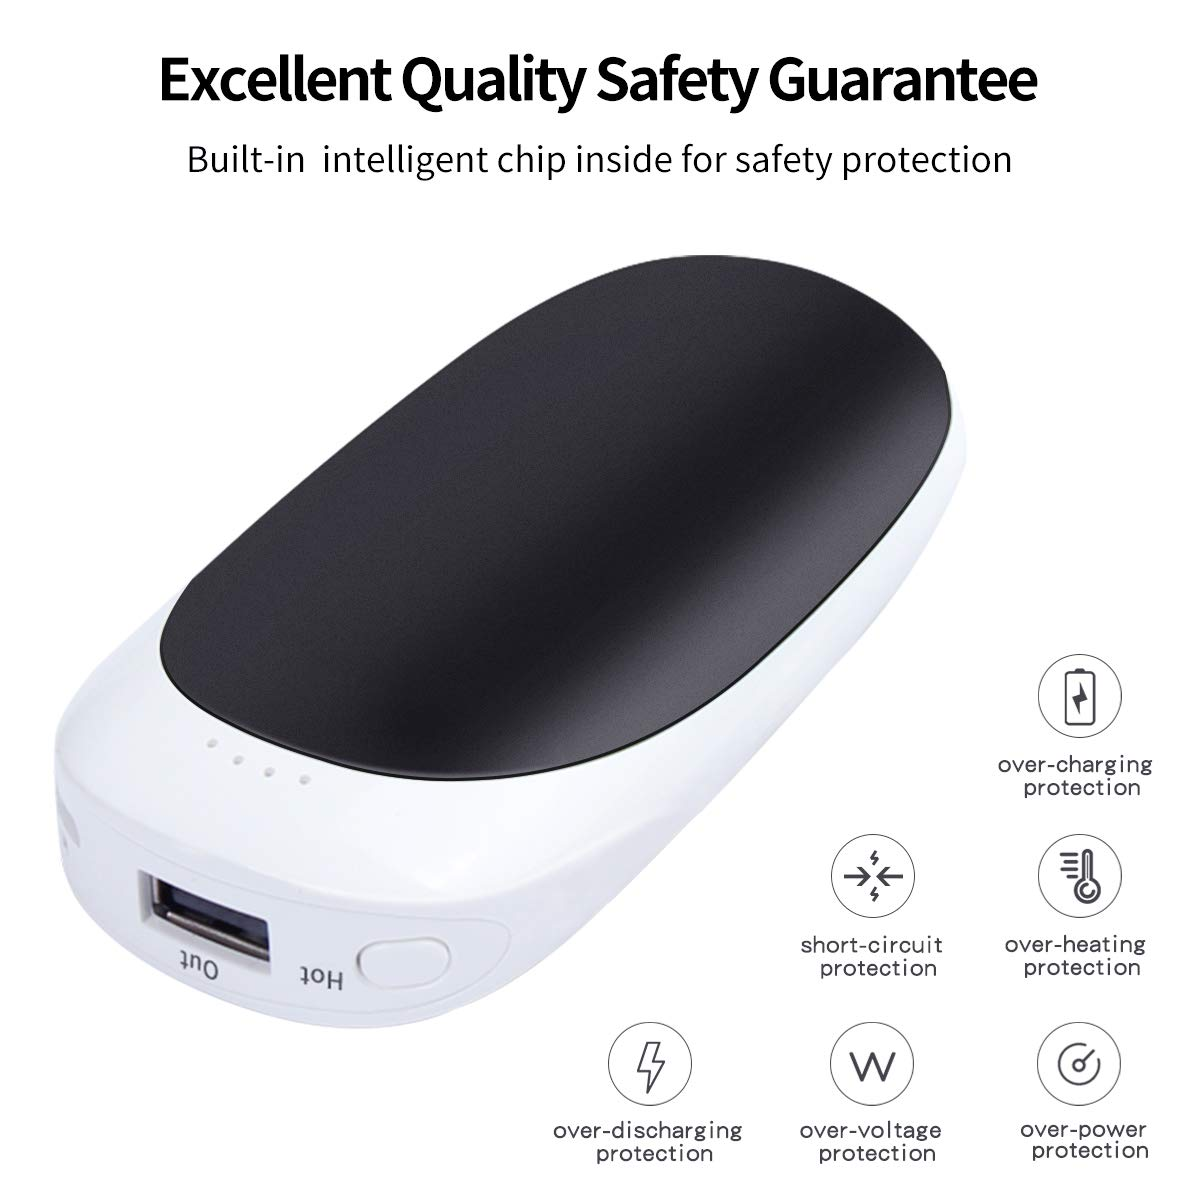 Rechargeable Hand Warmers ,Vshow Baby Dolphin USB Electric Pocket Handwarmer 5200mAh Reusable Portable Heater/Emergency Phone Charger for iPhone/Samsung Galaxy - Black